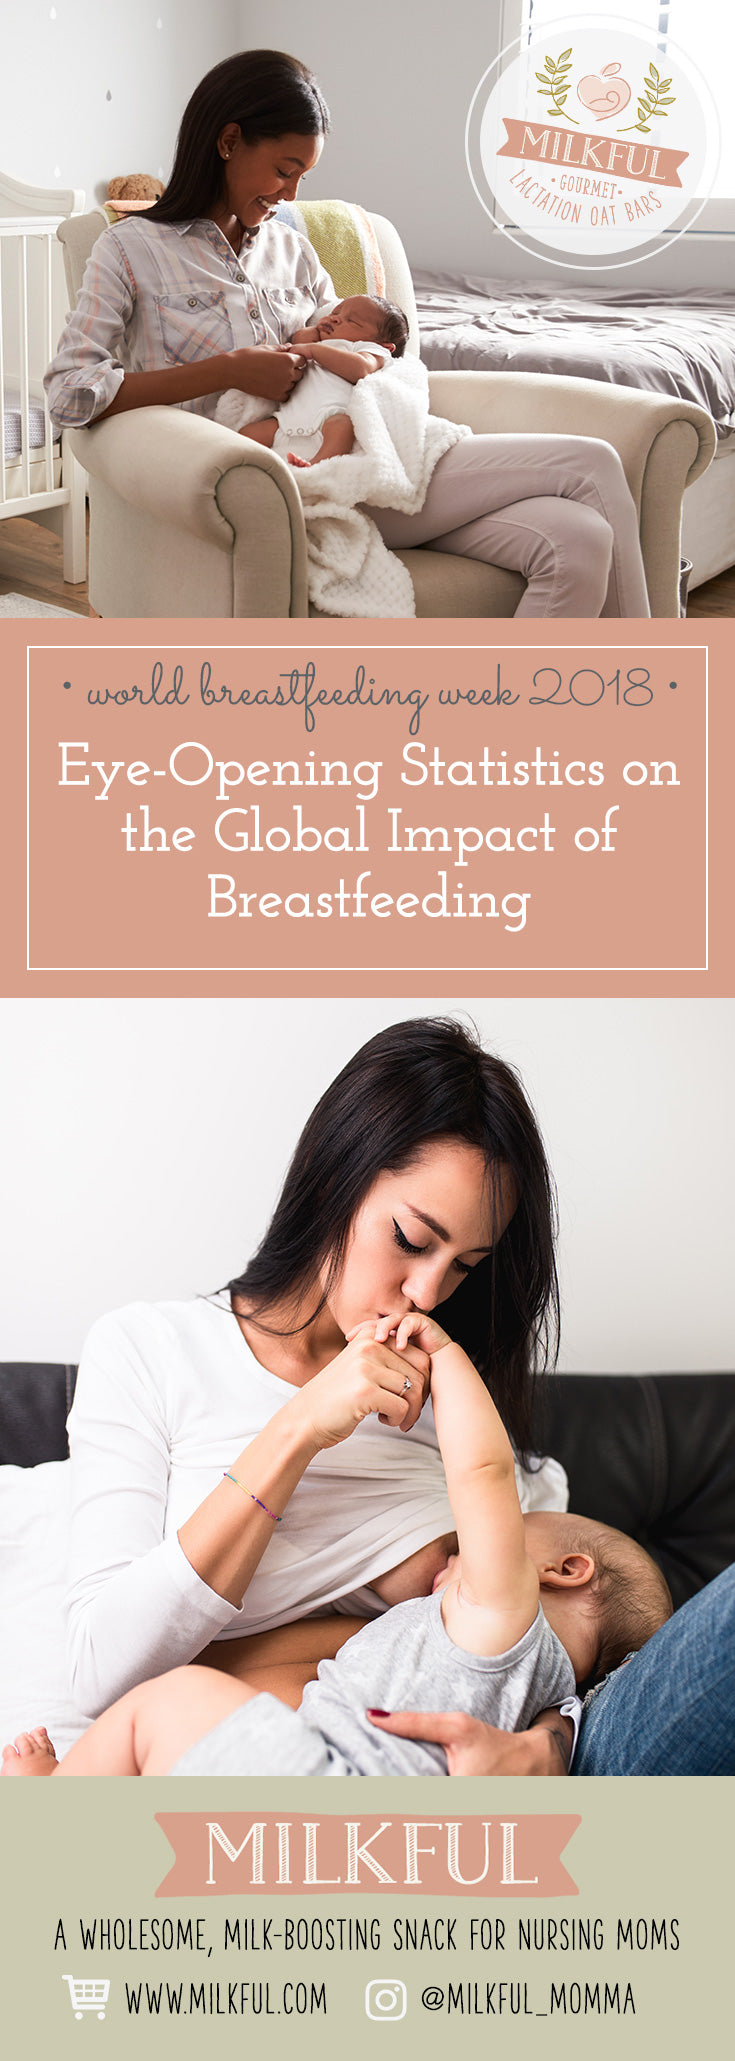 World Breastfeeding Week 2018: Eye-Opening Statistics on the Global Impact of Breastfeeding